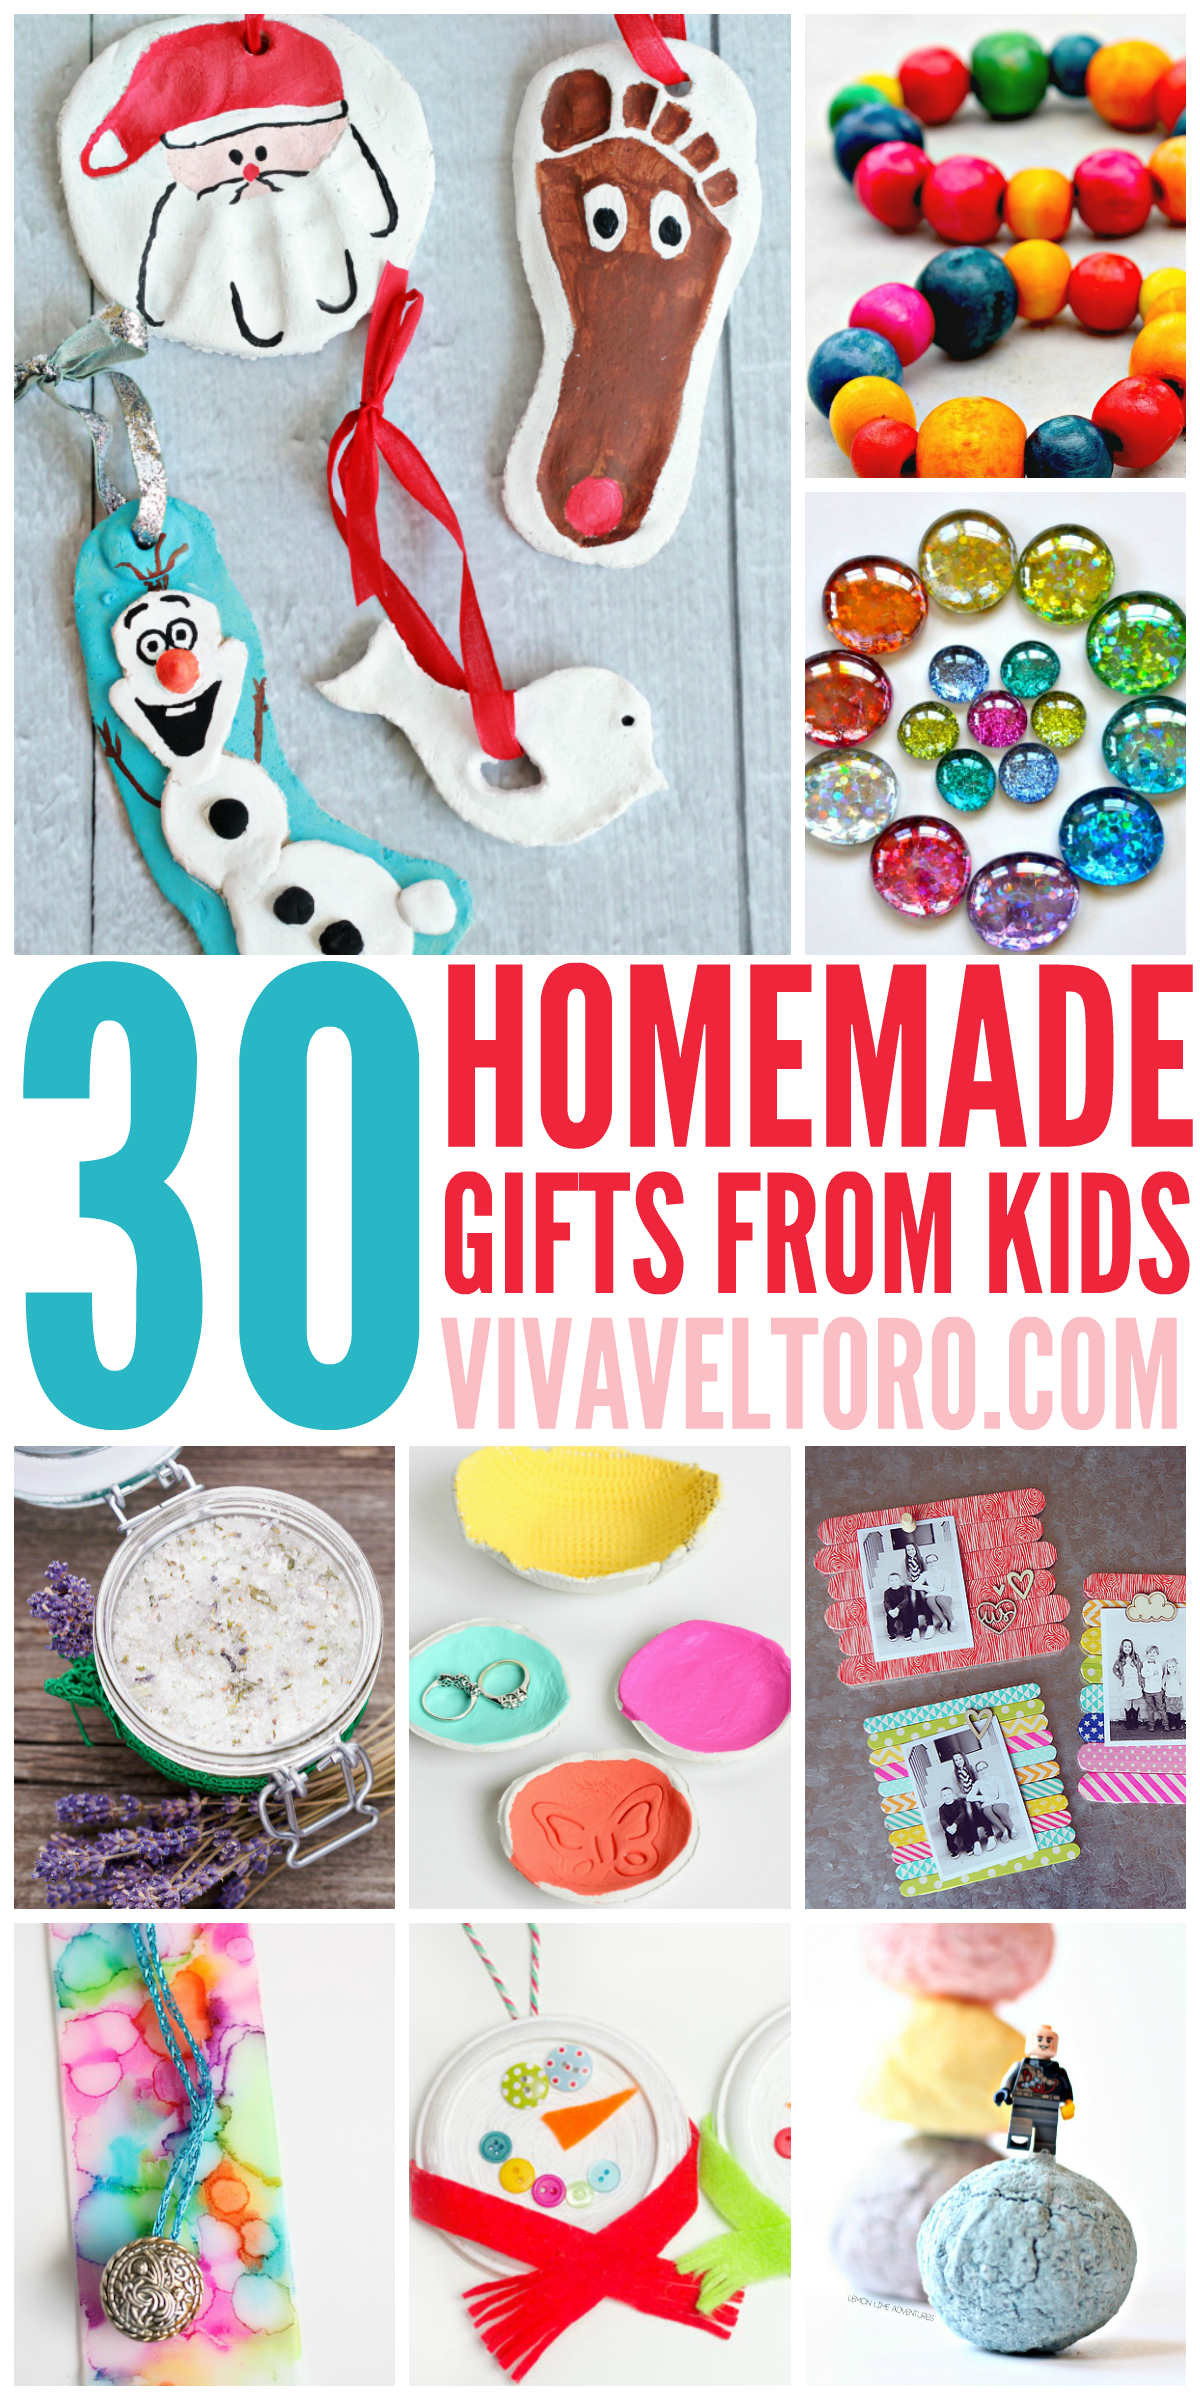 This list of full of crafts and DIY homemade gift ideas